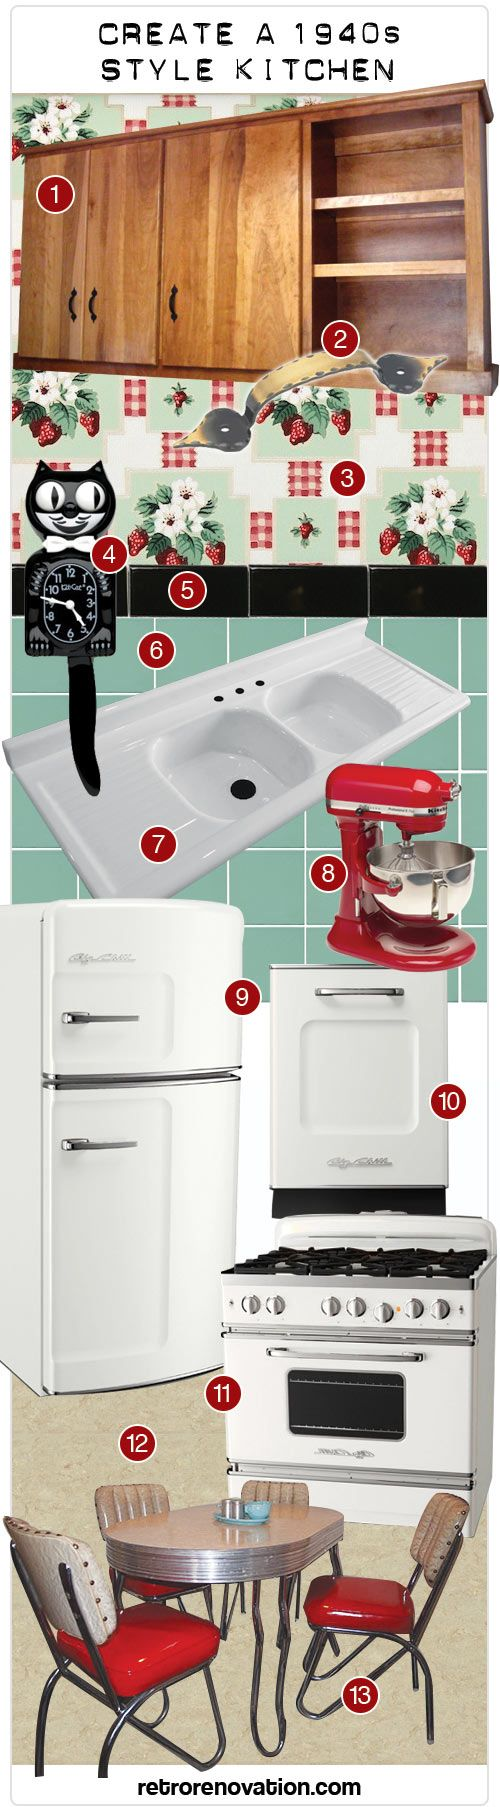 Create A 1940s Or Early 1950s Design Kitchen   My Second Mood Board